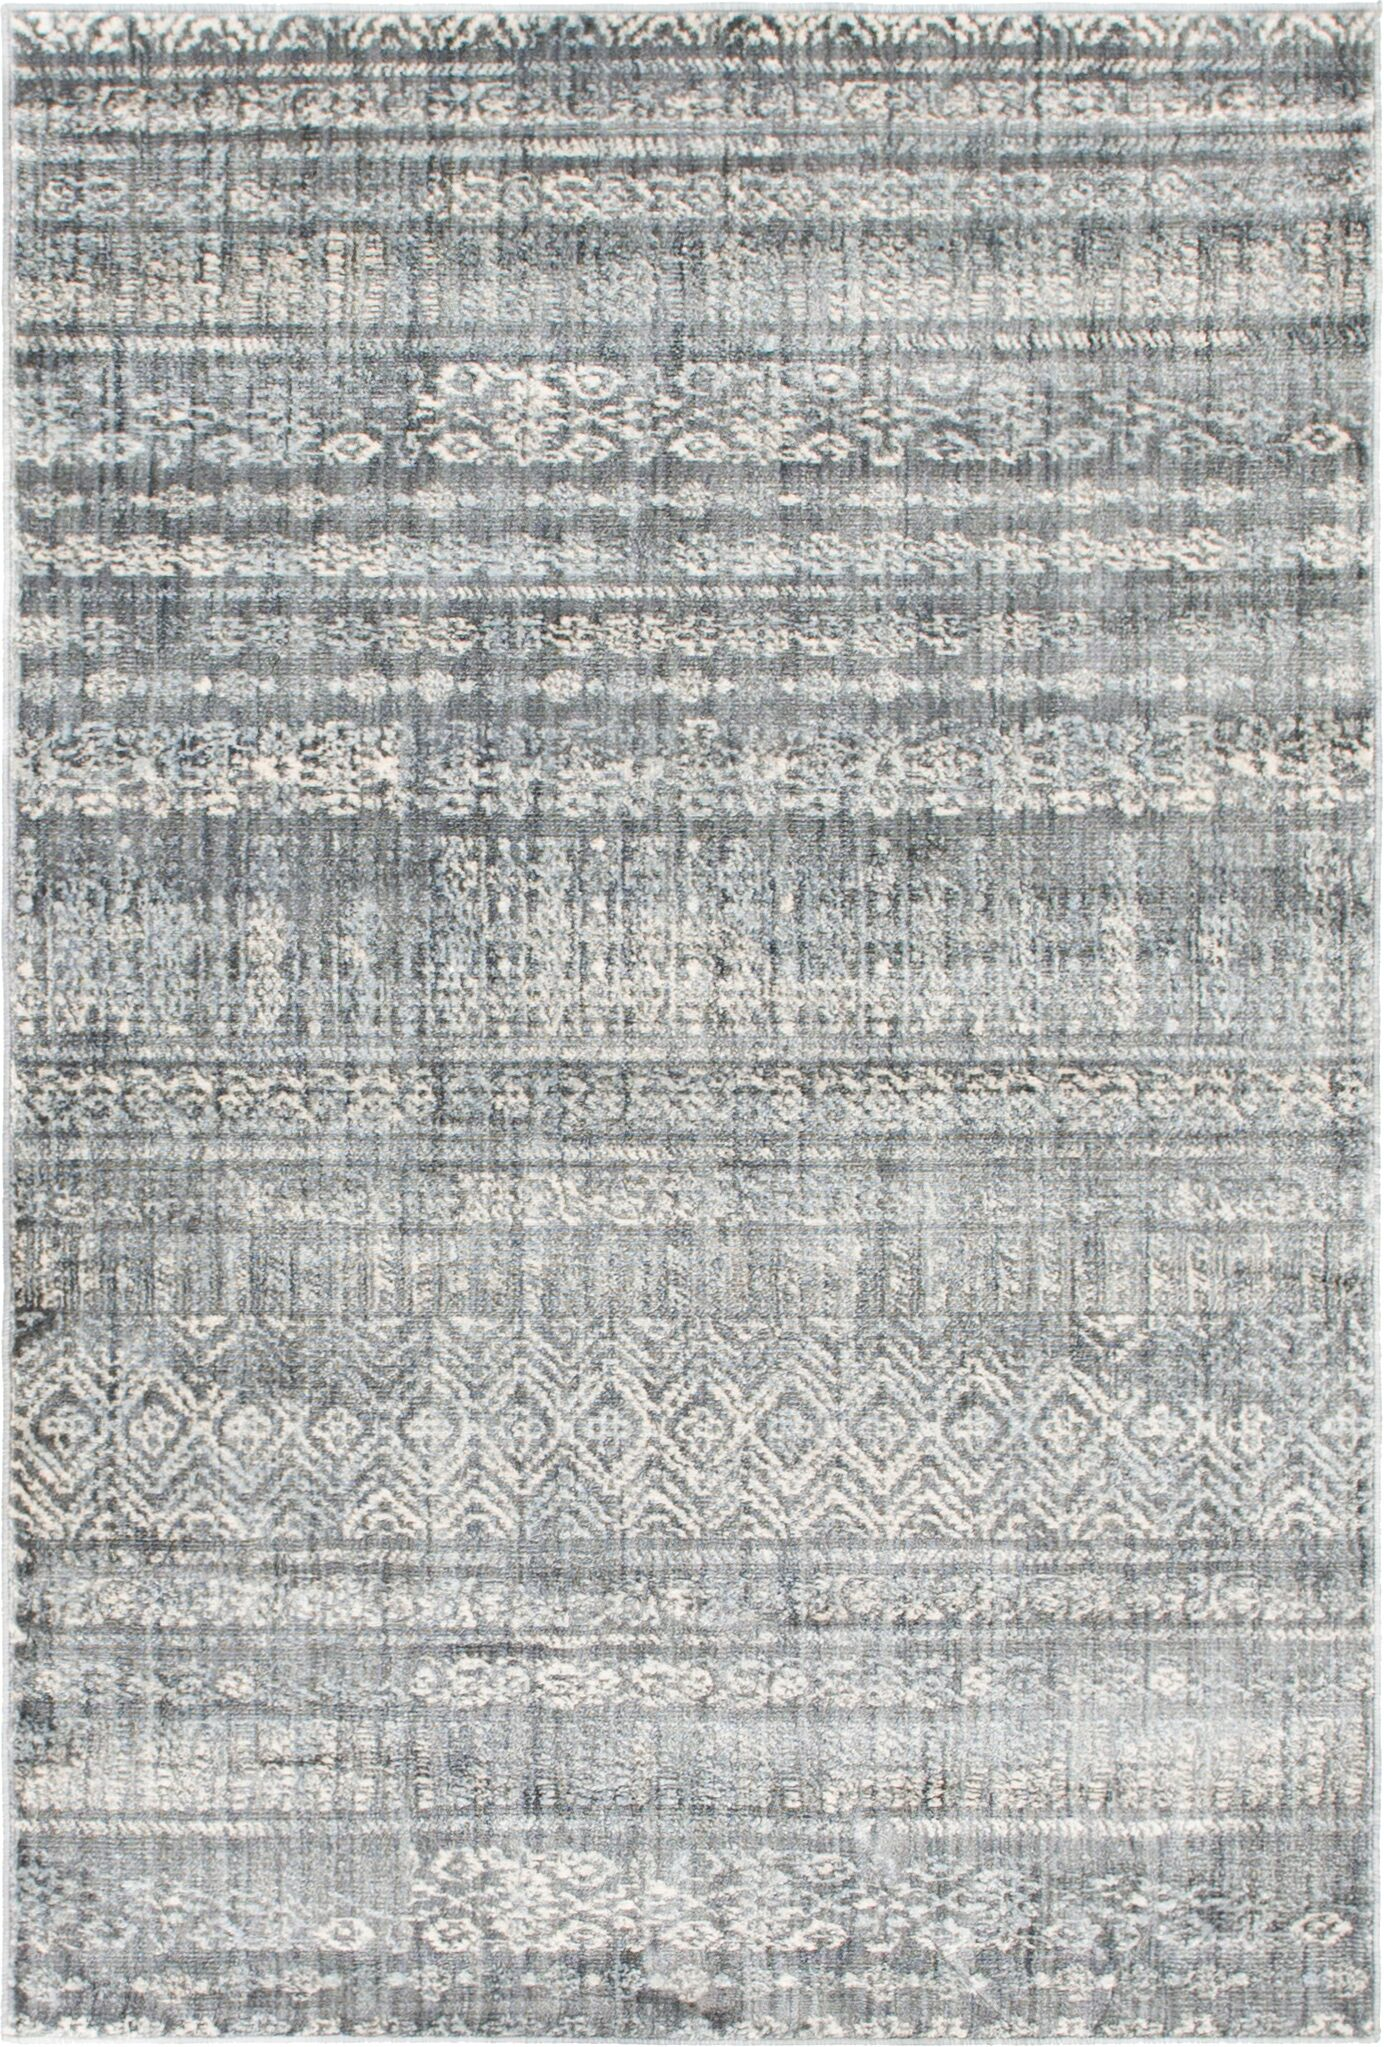 Montross Gray Area Rug Rug Size: Rectangle 4' x 6'